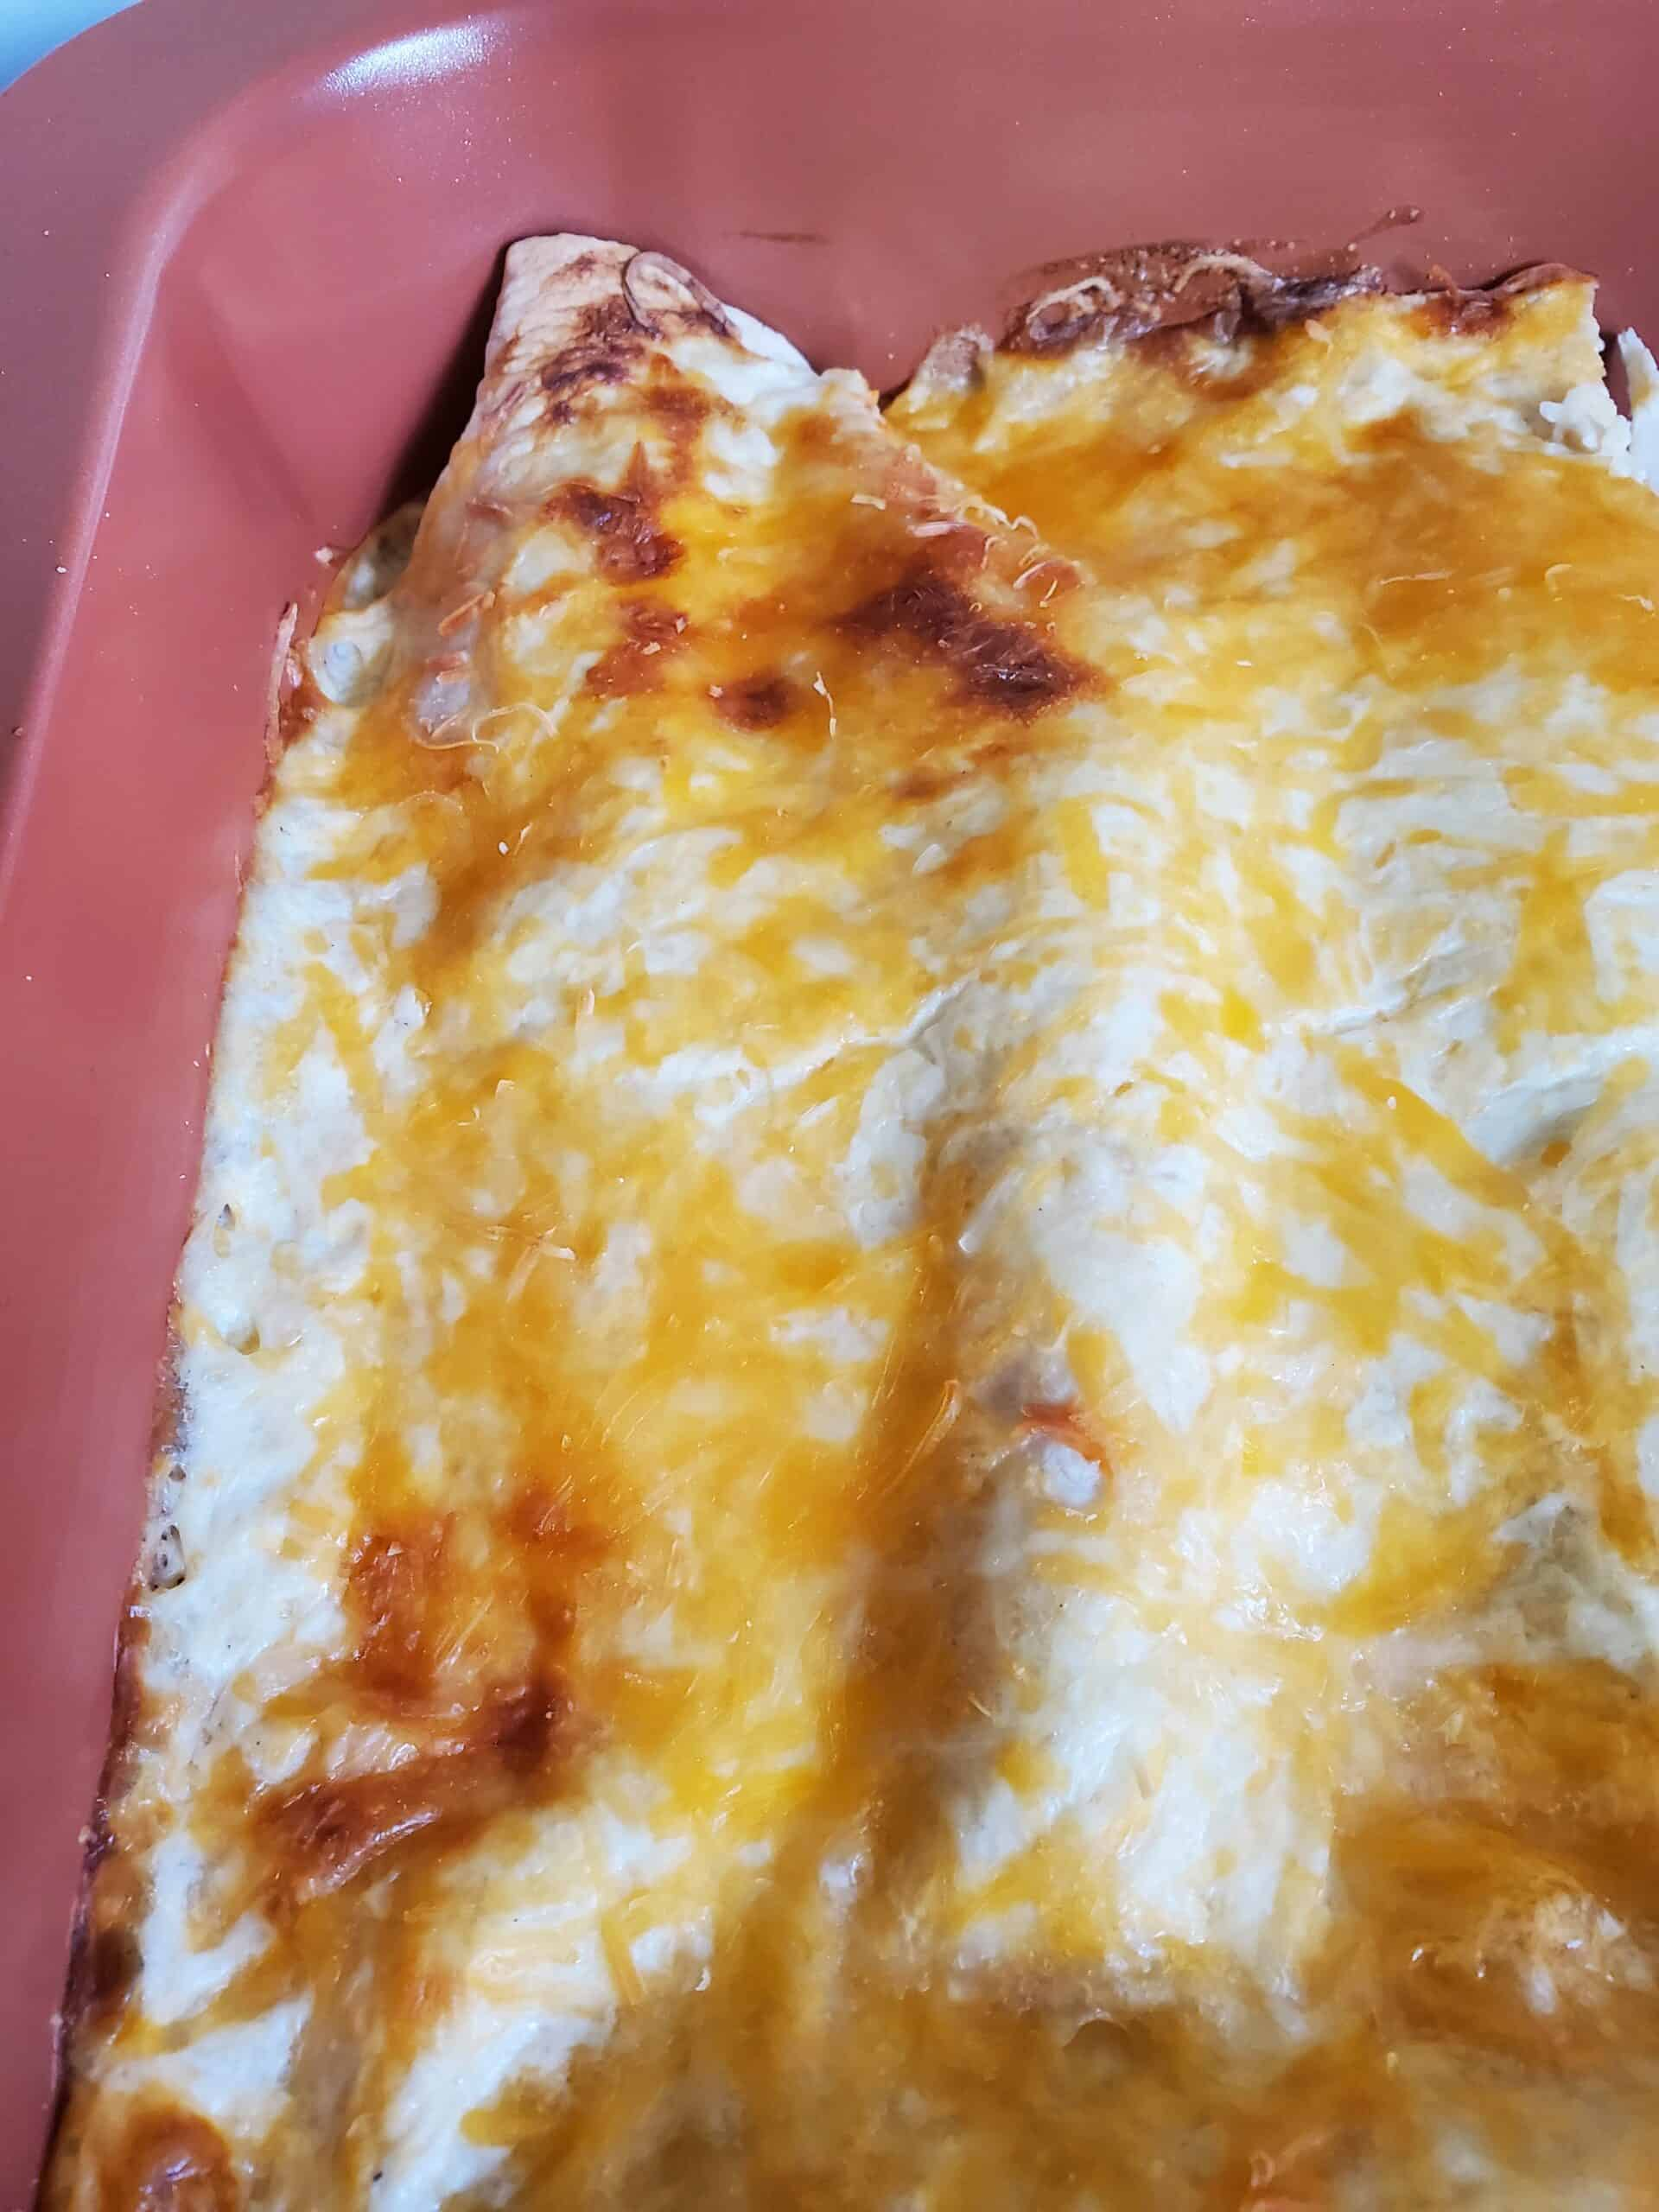 #ad @HpHood Sour Cream Chicken Enchiladas~ Creamy chicken and cheese enchiladas with a flavorful sour cream white sauce is a simple and delicious meal that comes together quickly. #TouchOfHood #IC #mooreorlesscooking #enchiladas #sourcream via @Mooreorlesscook